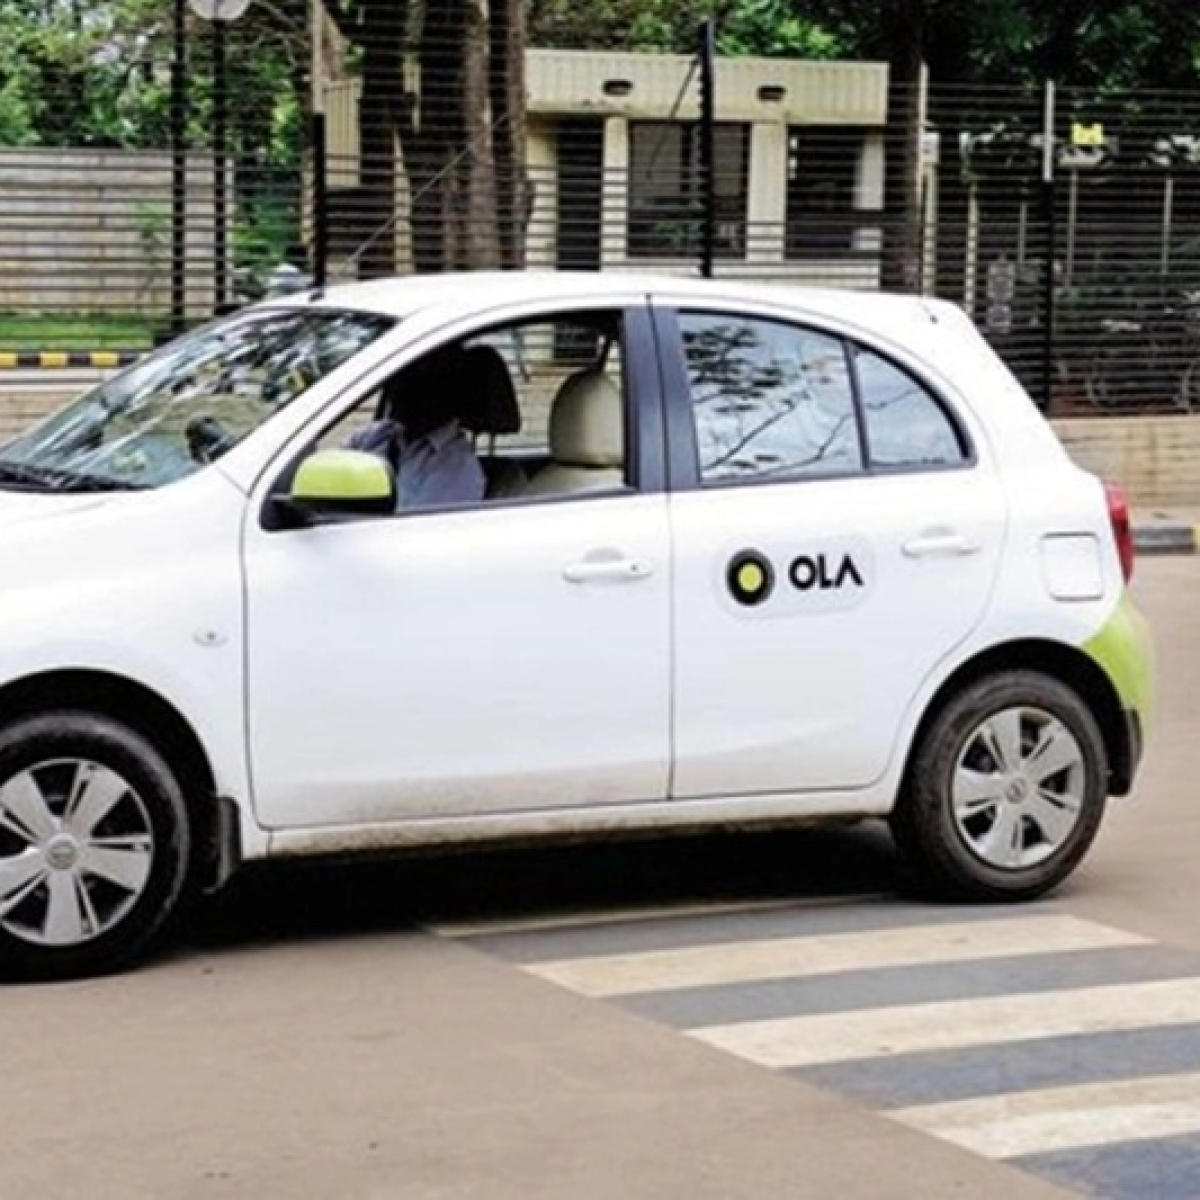 Govt proposes capping surge pricing by cab aggregators at 1.5 times of base fare